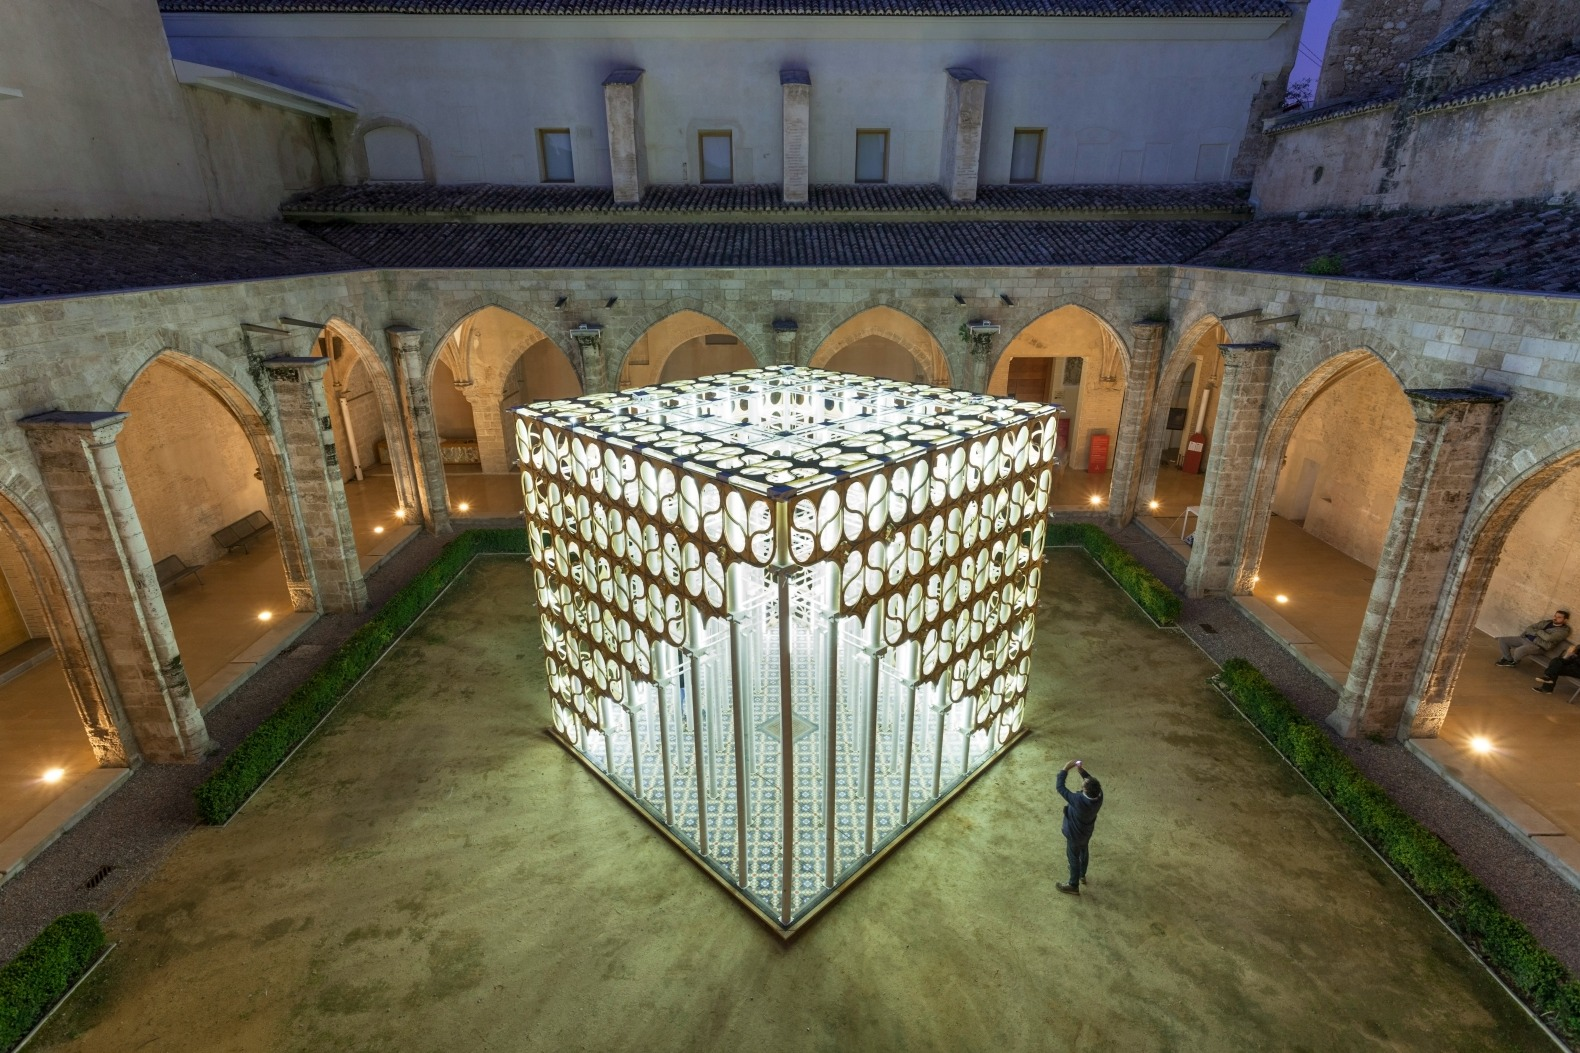 Glowing cardboard pavilion pops up in a Gothic courtyard in Valencia